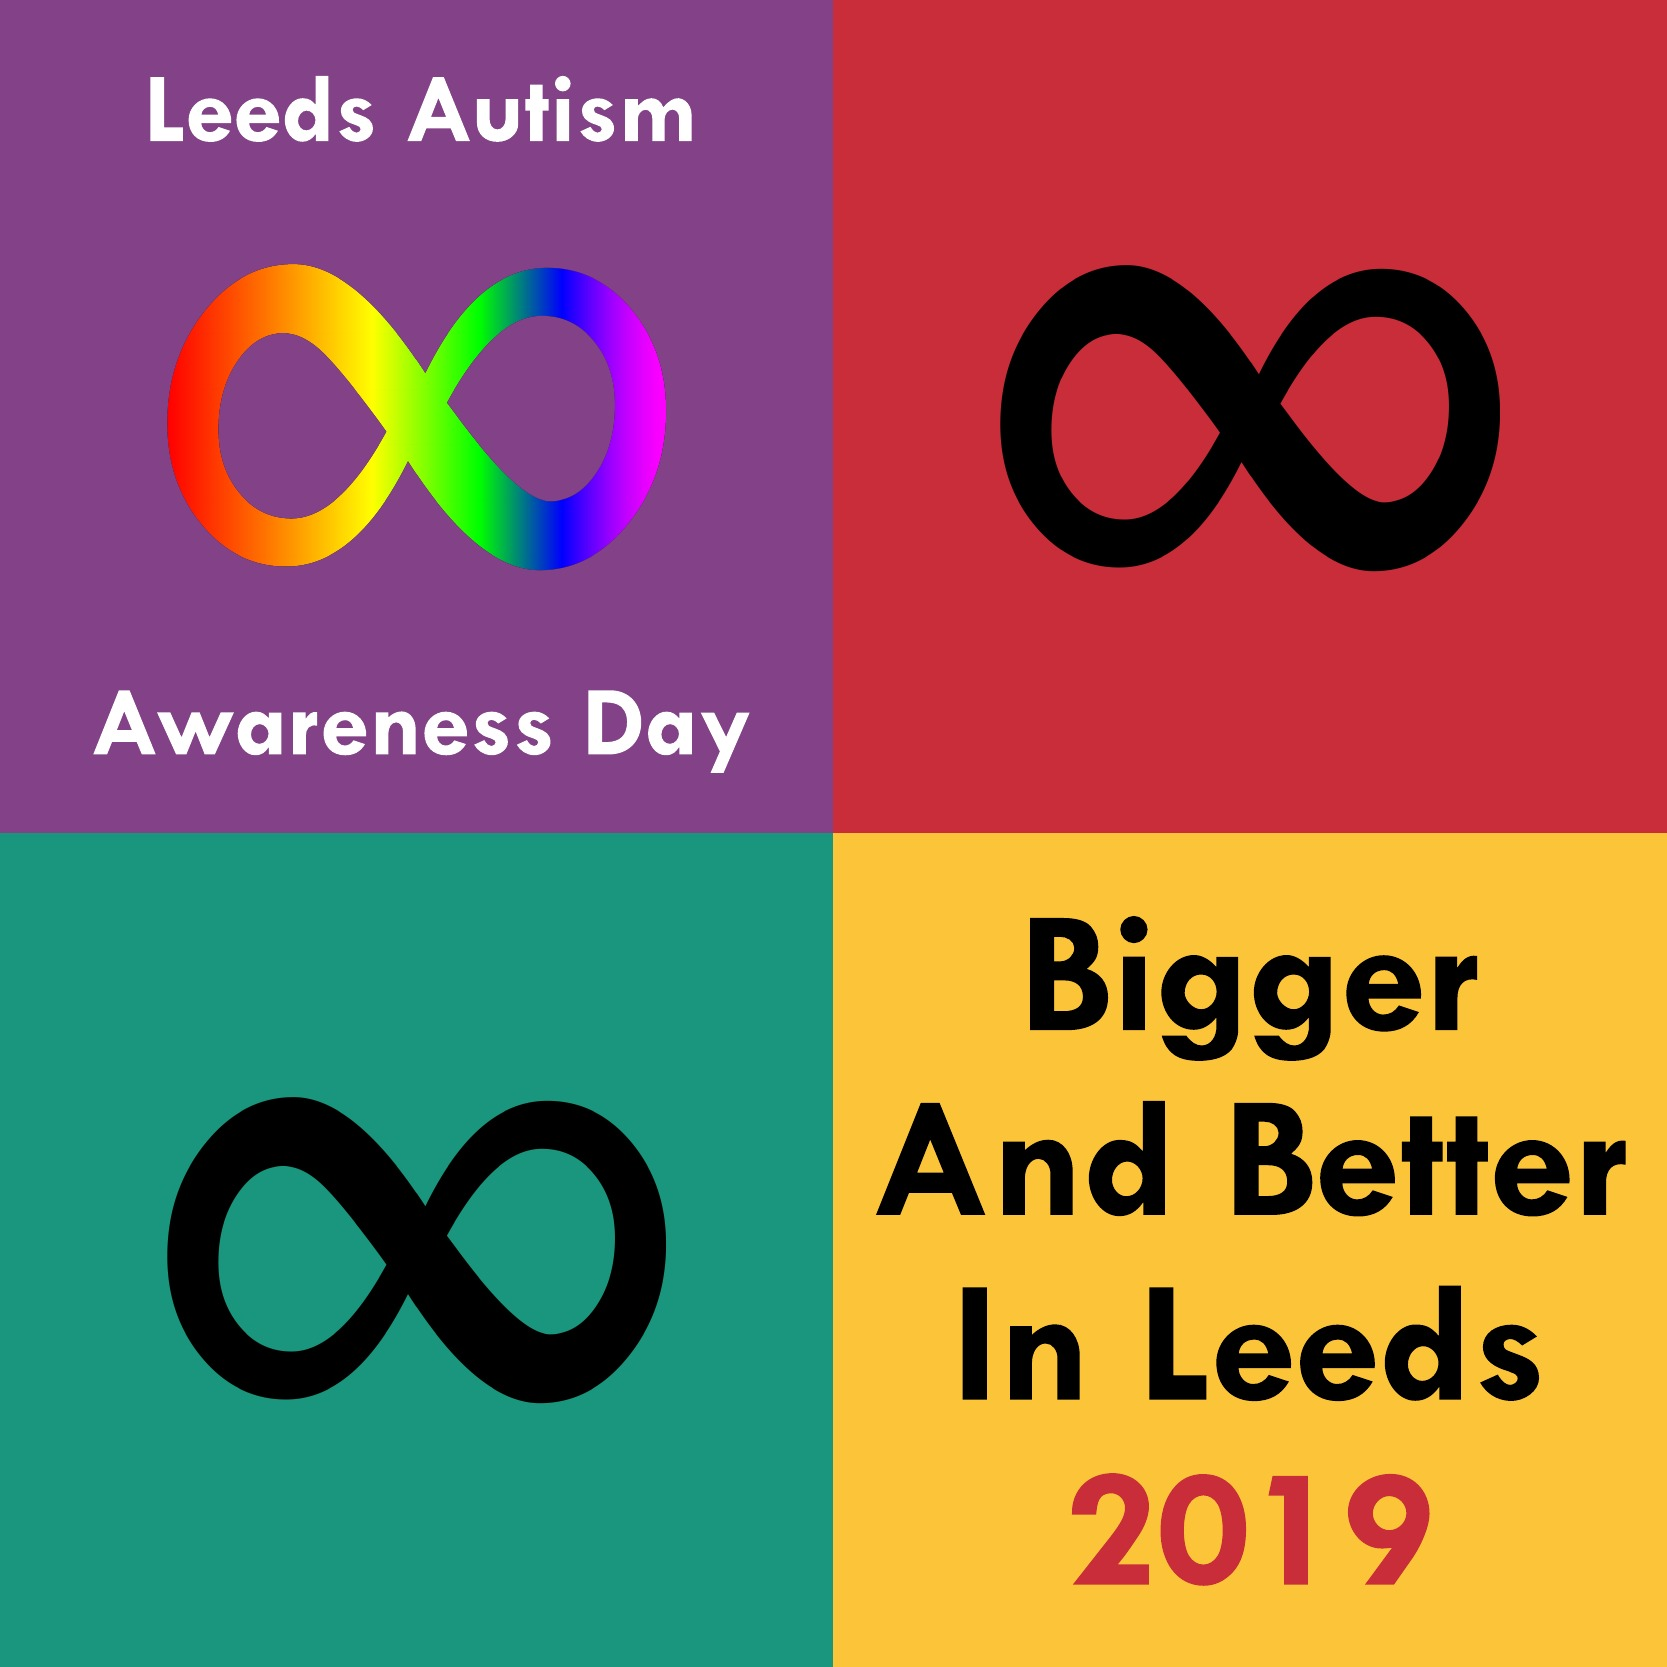 Bigger And Better In Leeds Autism Show